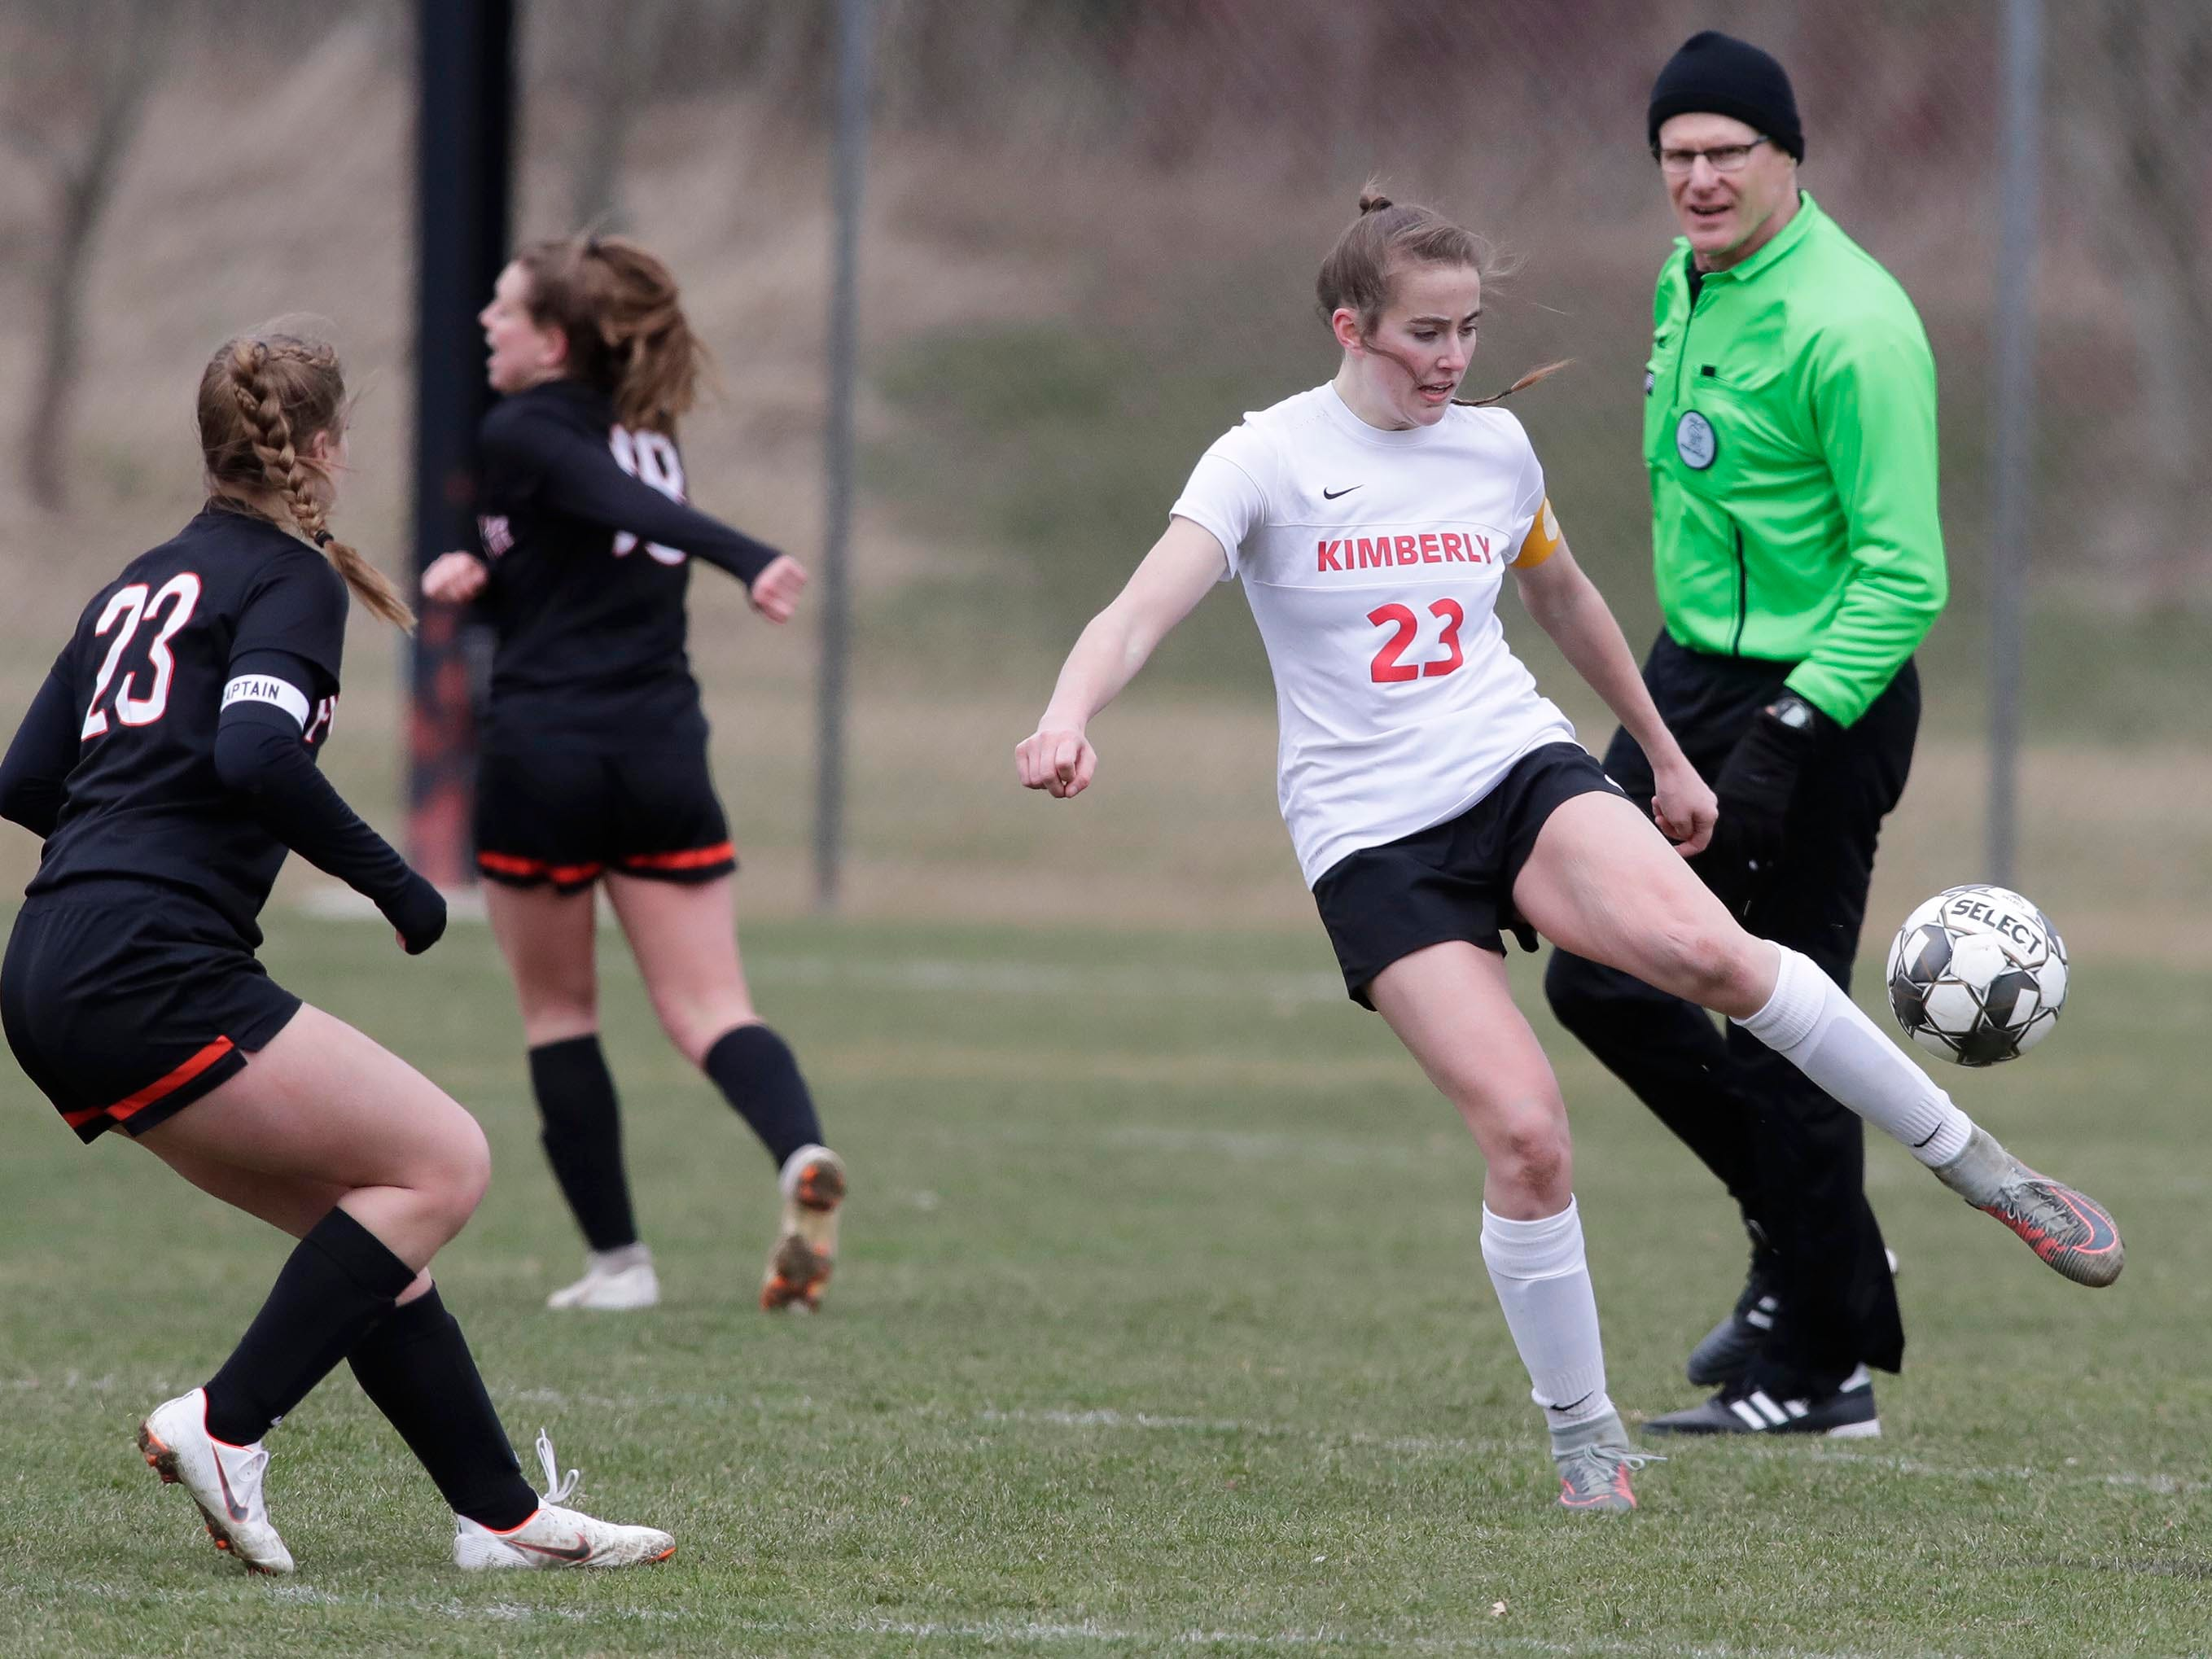 Kimberly's Elsi Twombly (23) kicks the ball against Plymouth, Saturday, April 13, 2019, in Plymouth, Wis.